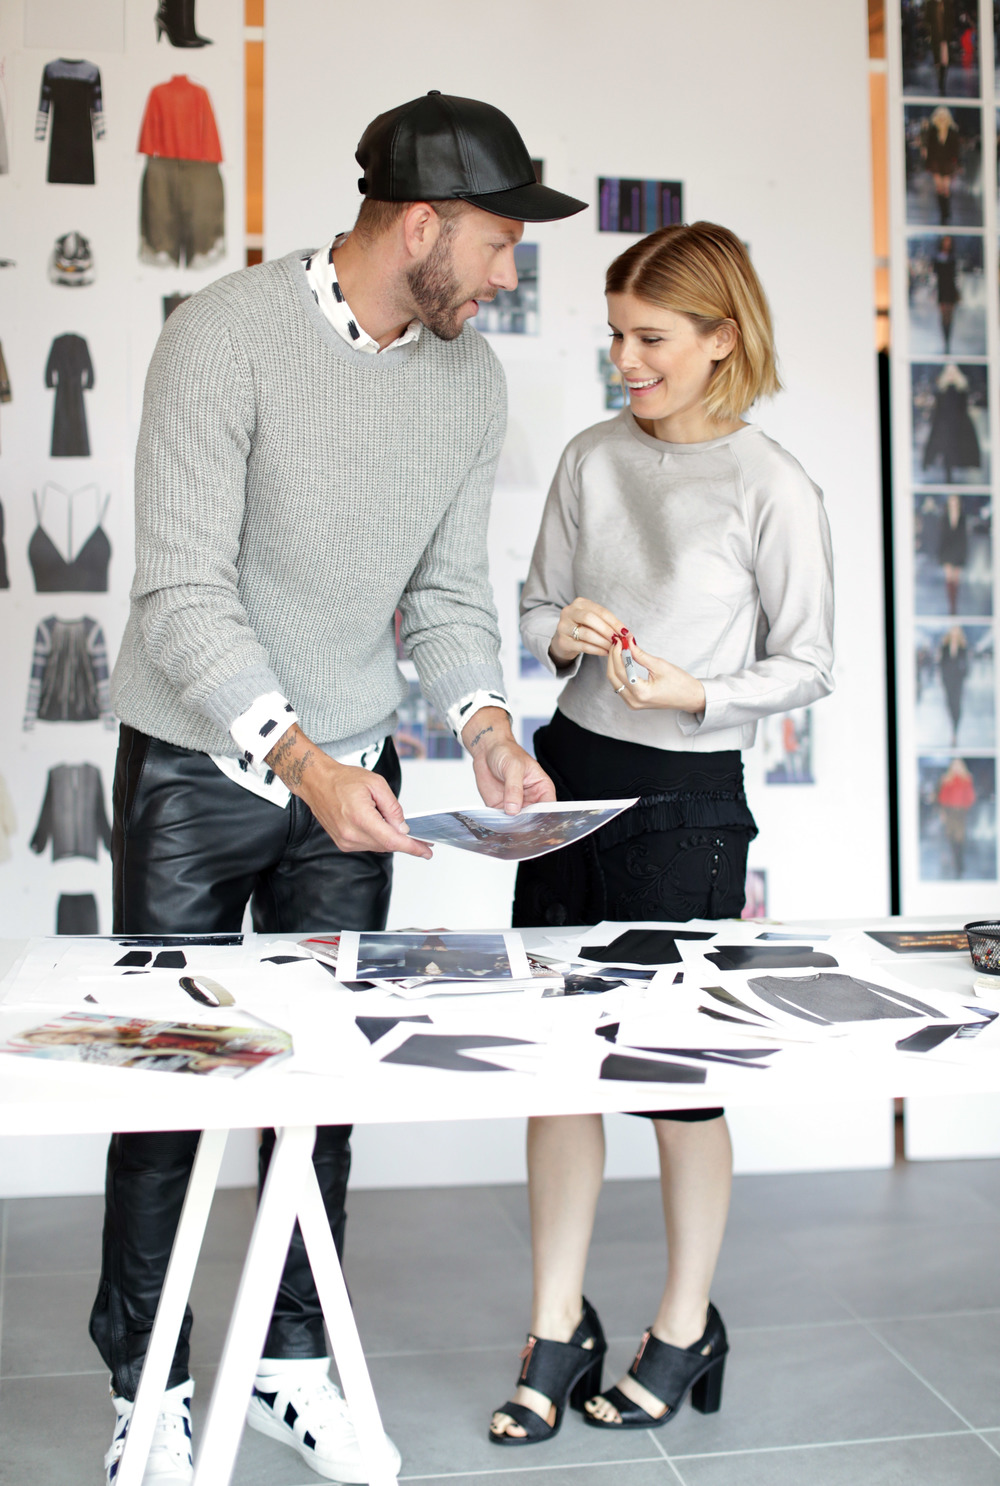 H&M collab actor Kate Mara and celebrity stylist Johnny Wujek